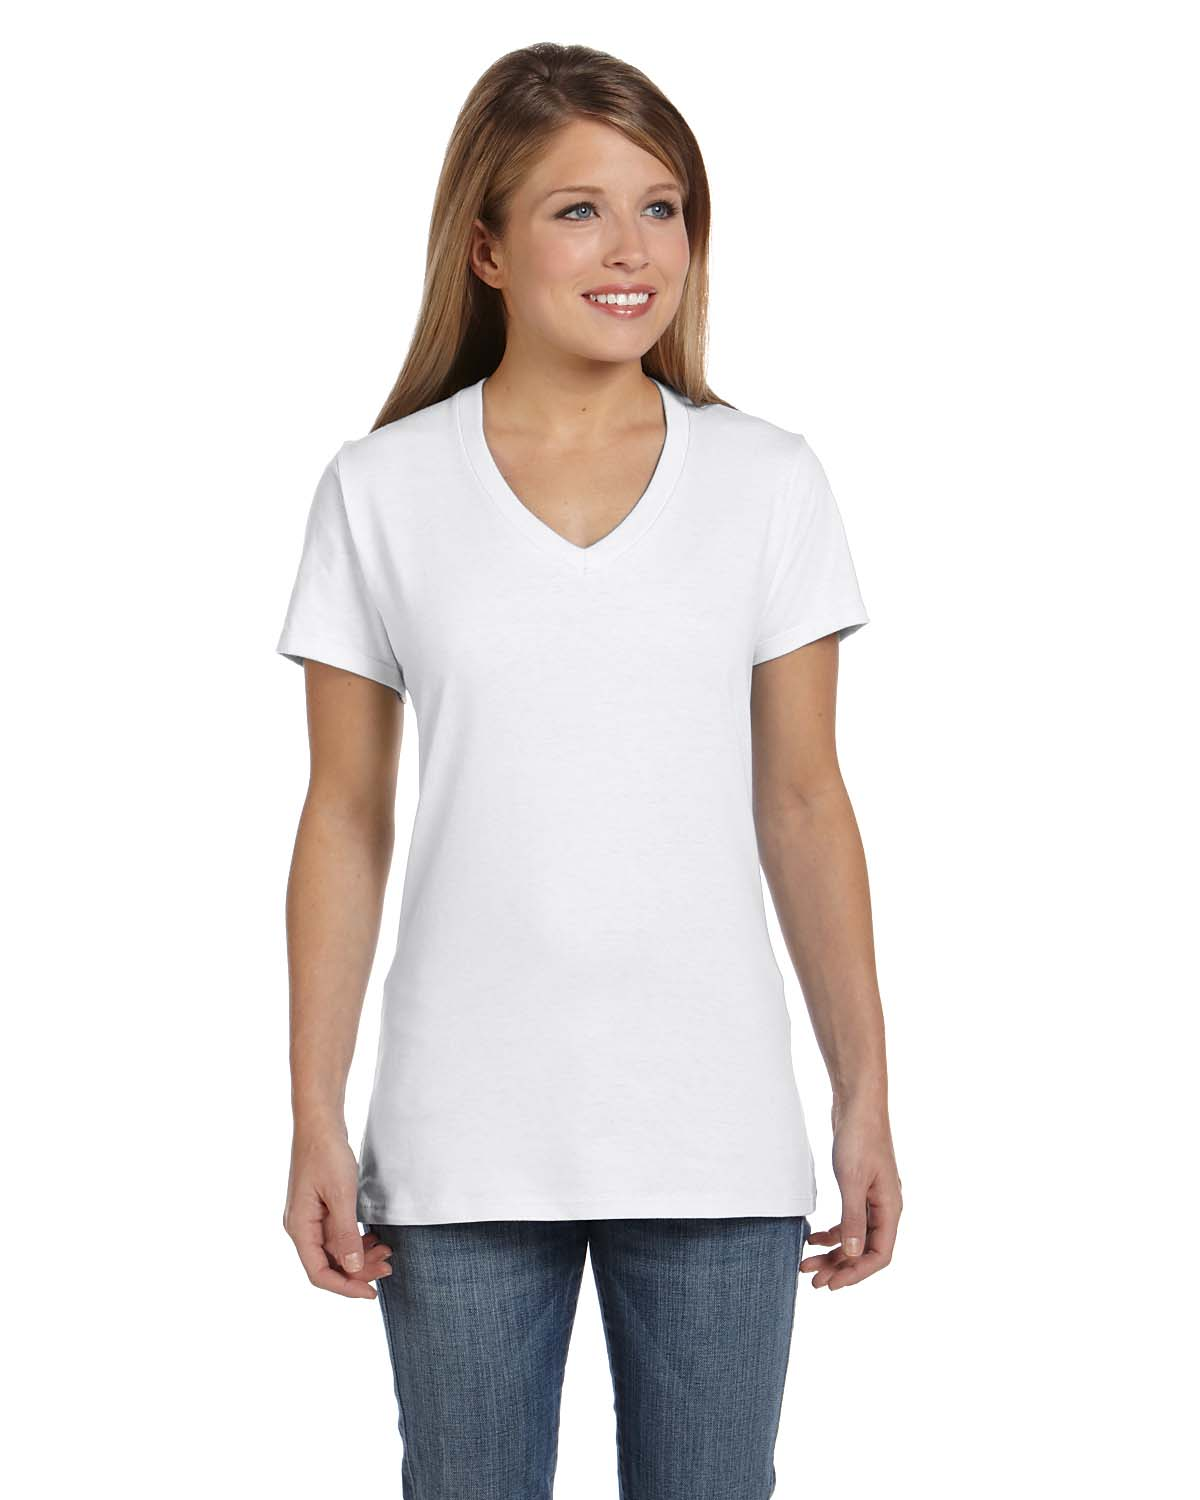 3fdbcf28 Hanes SO4V Women's Ringspun V-Neck T-Shirt - Shirtmax